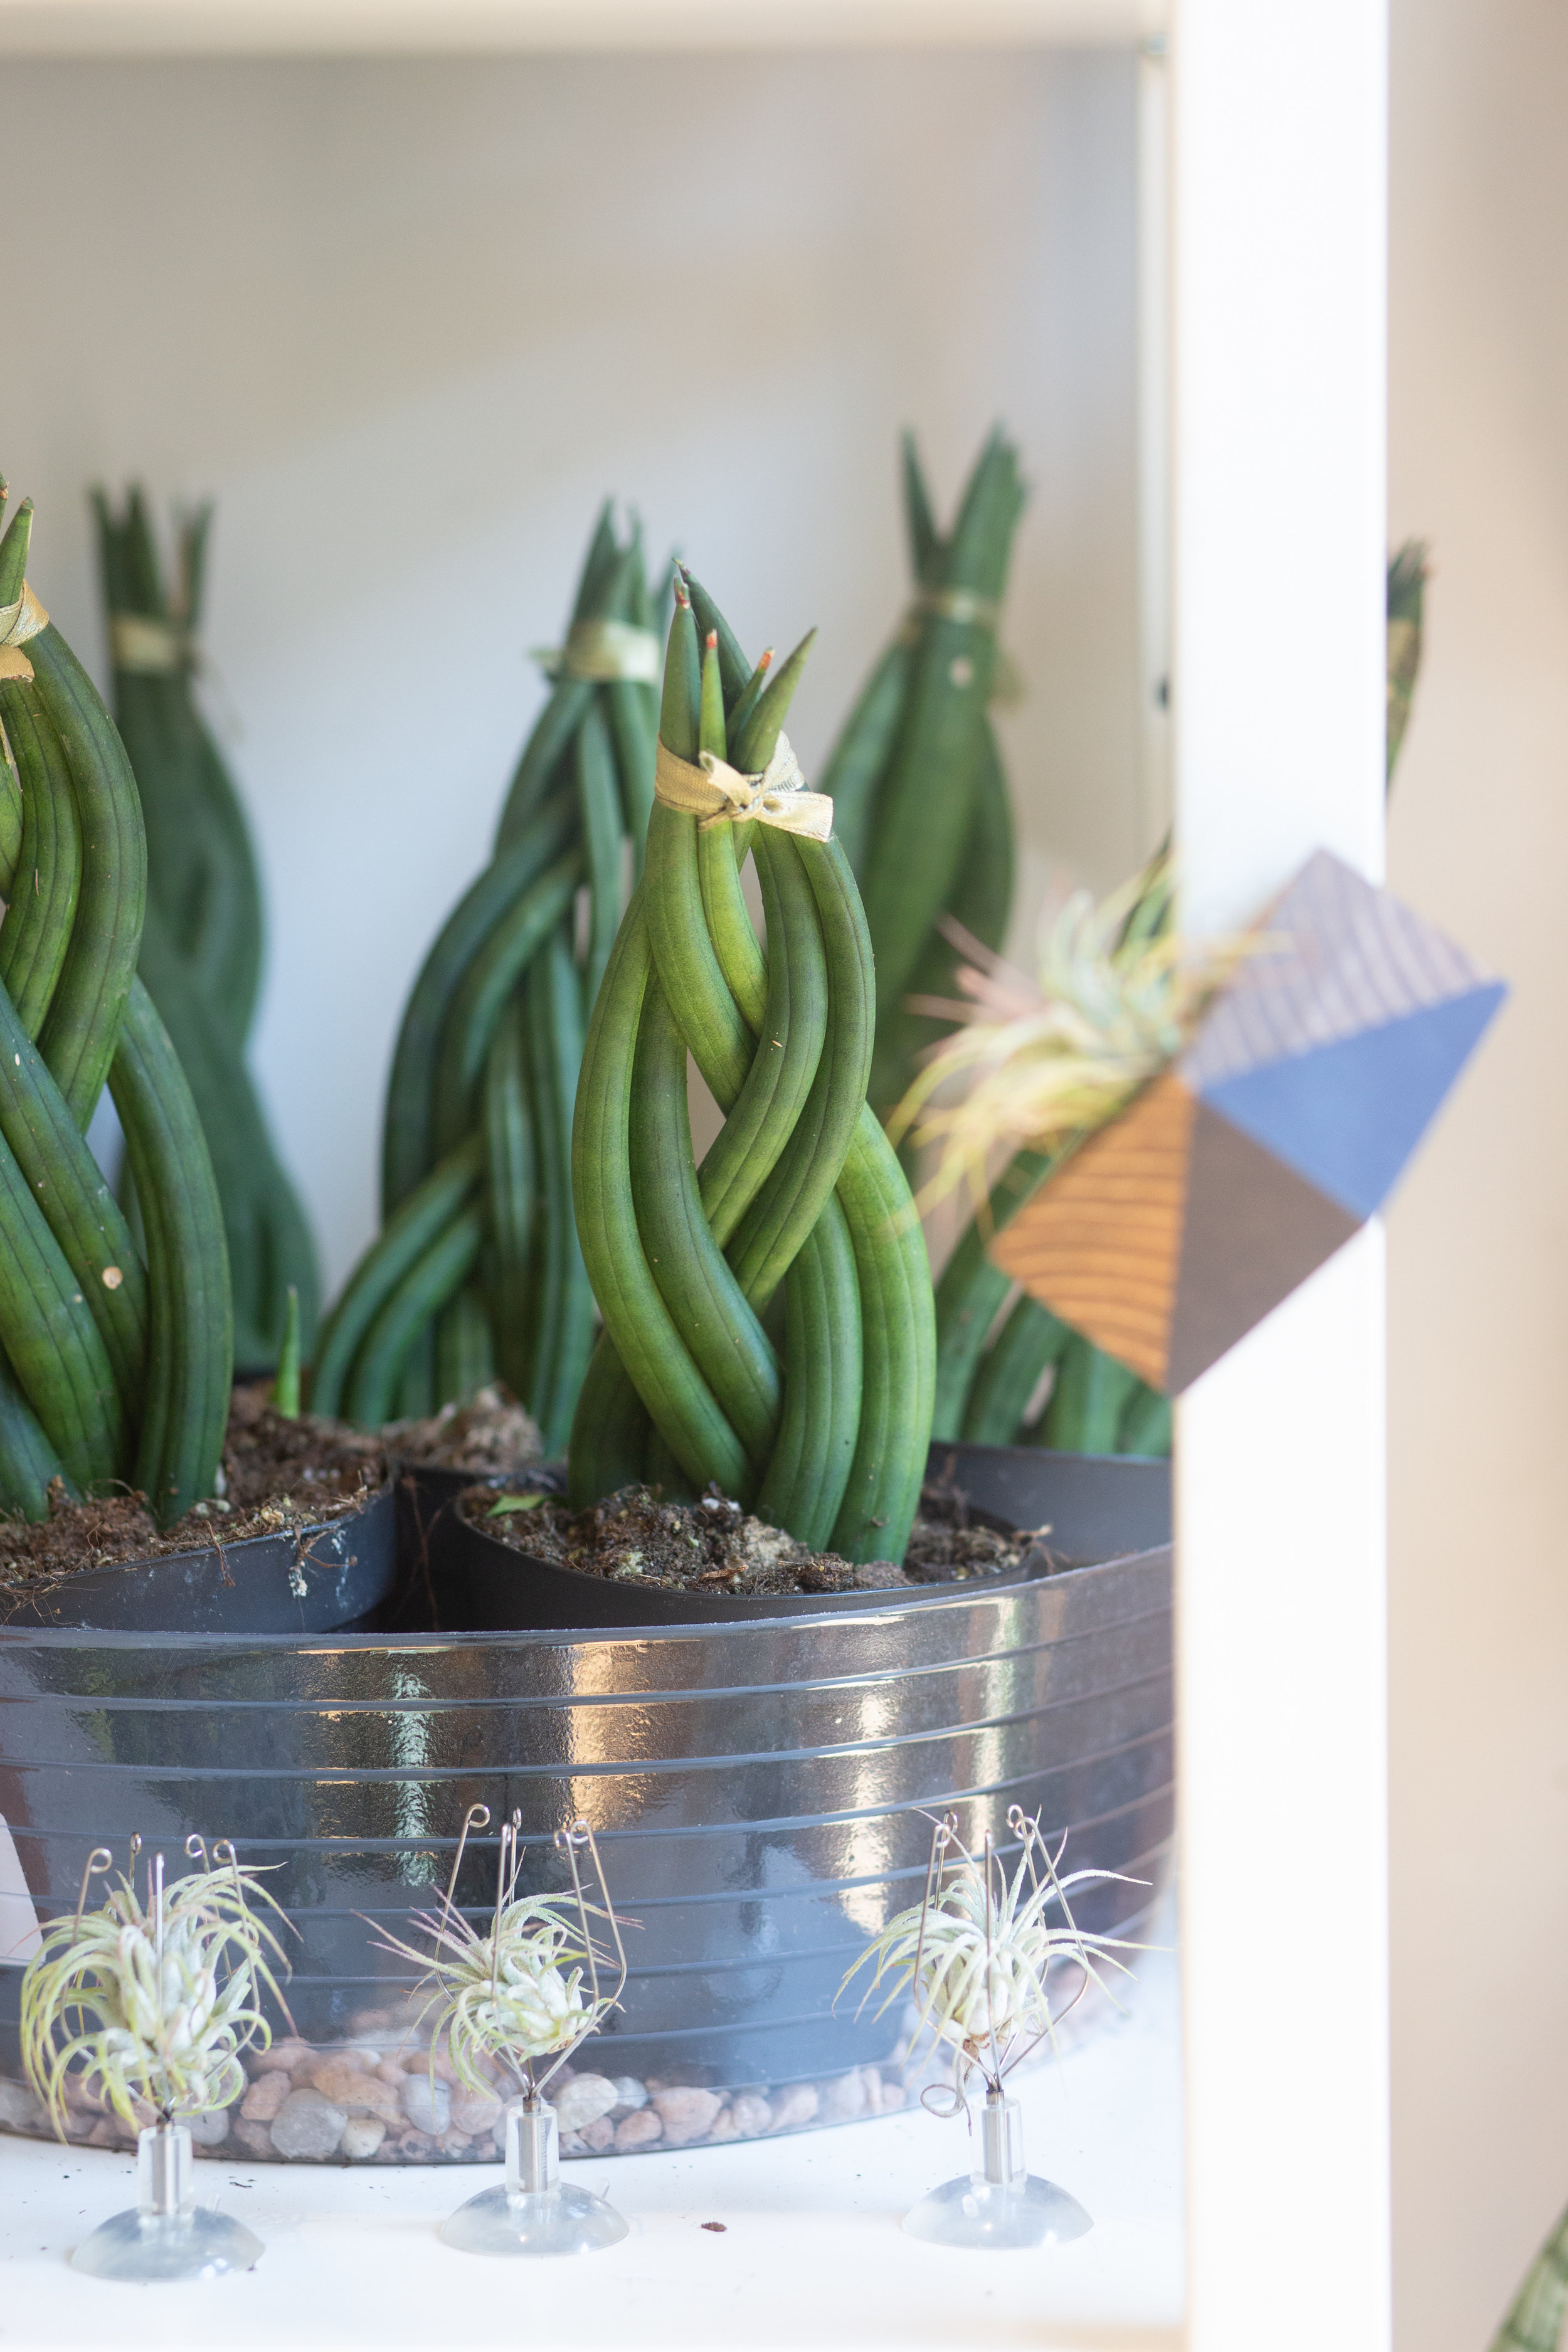 This sansevieria plant has been trained to grow in a braid pattern.